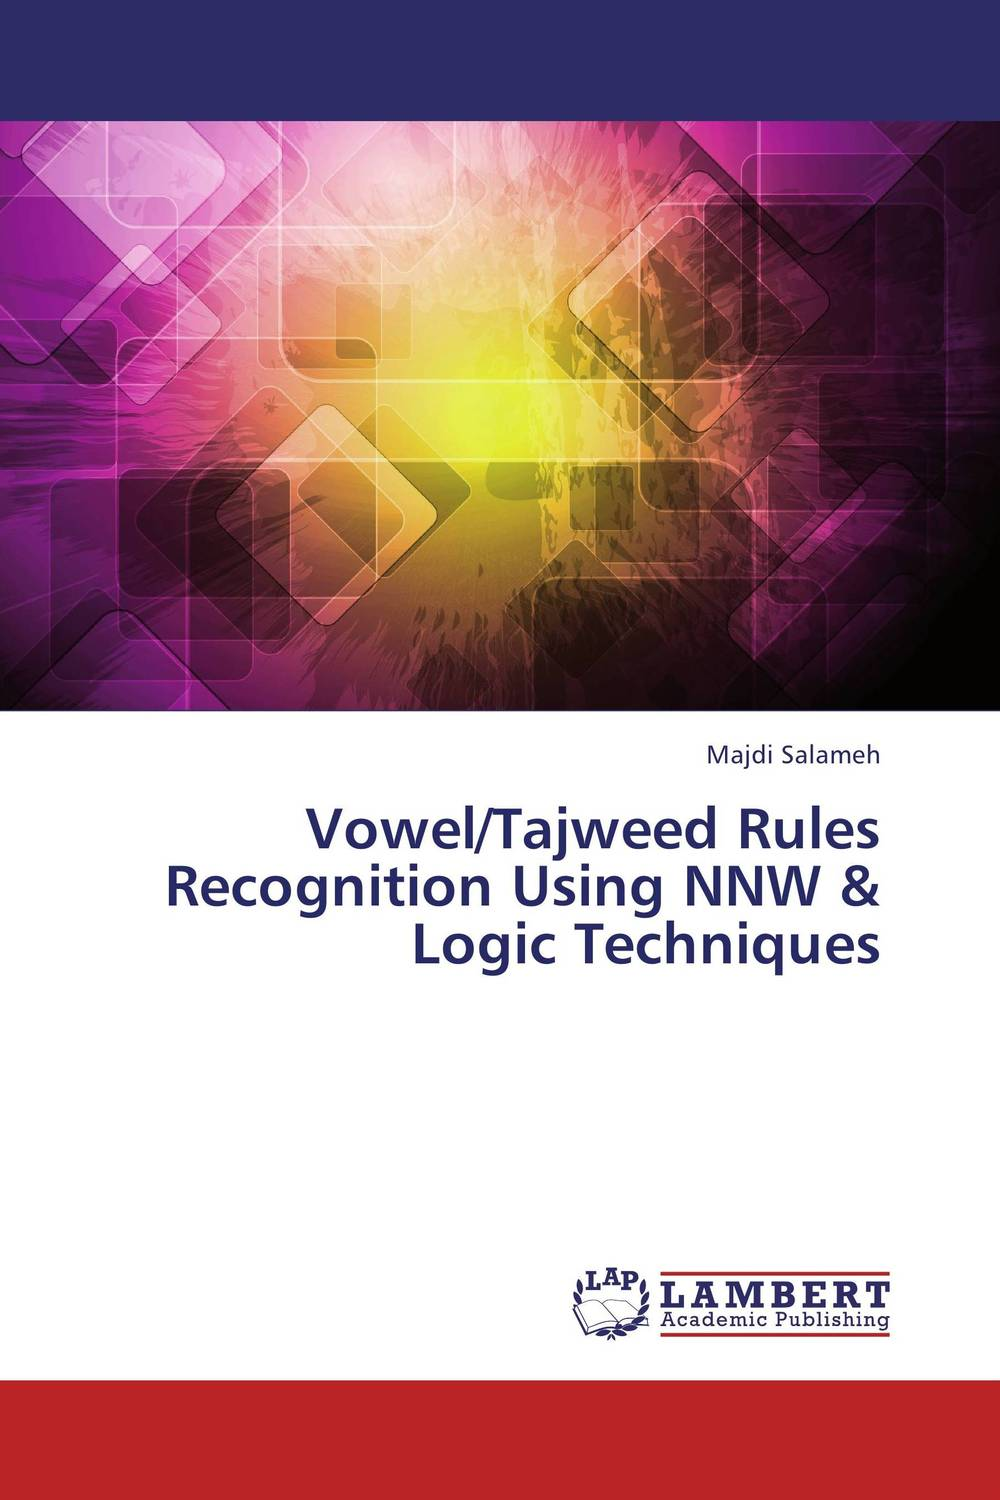 Vowel/Tajweed Rules Recognition Using NNW & Logic Techniques dermoscopic image segmentation using fuzzy techniques